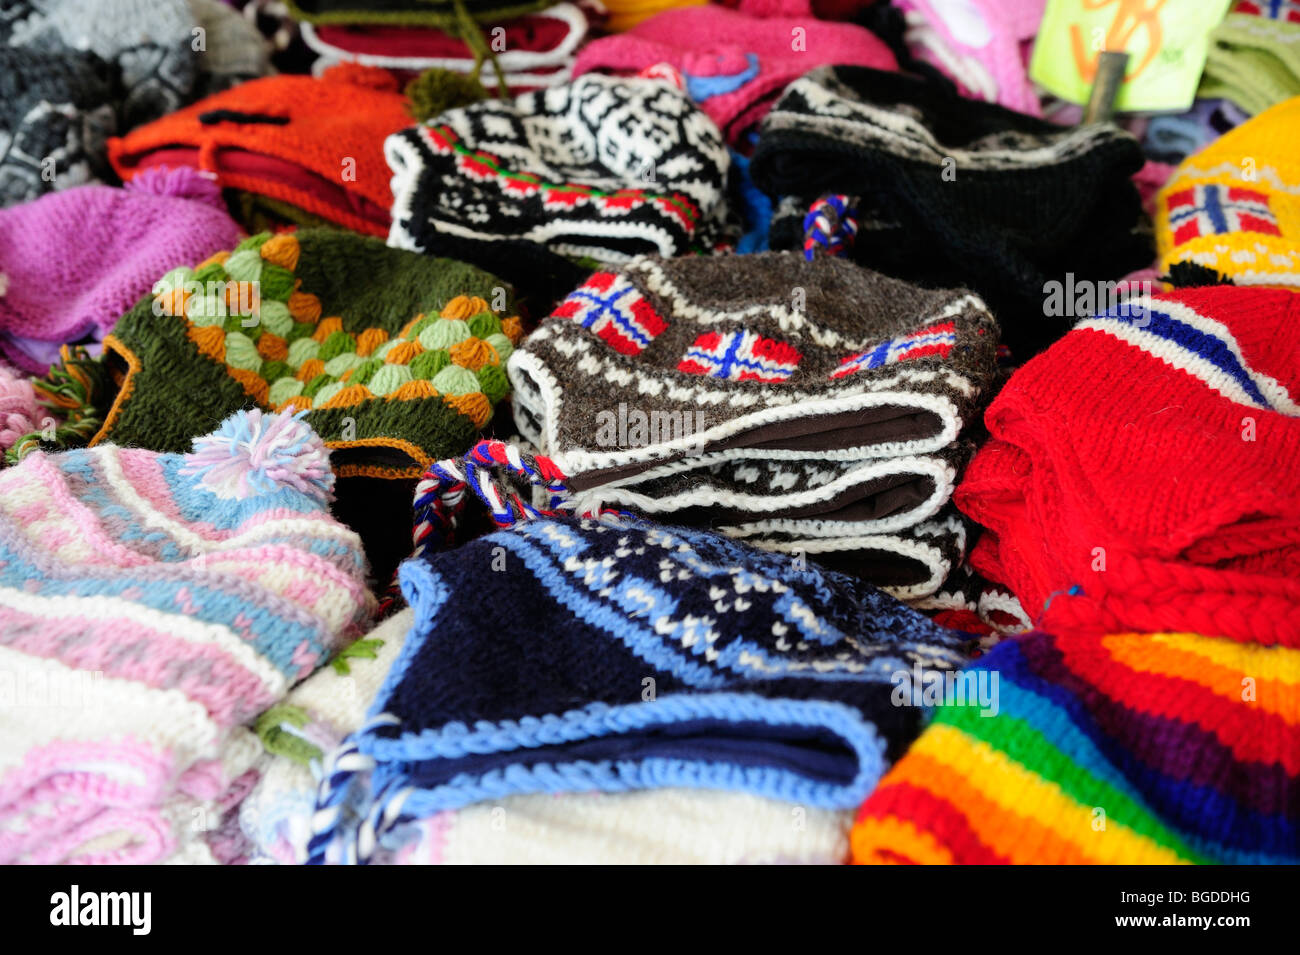 Typical Norwegian knit caps at a souvenir stand at the market in Bergen, Norway, Scandinavia, Northern Europe - Stock Image